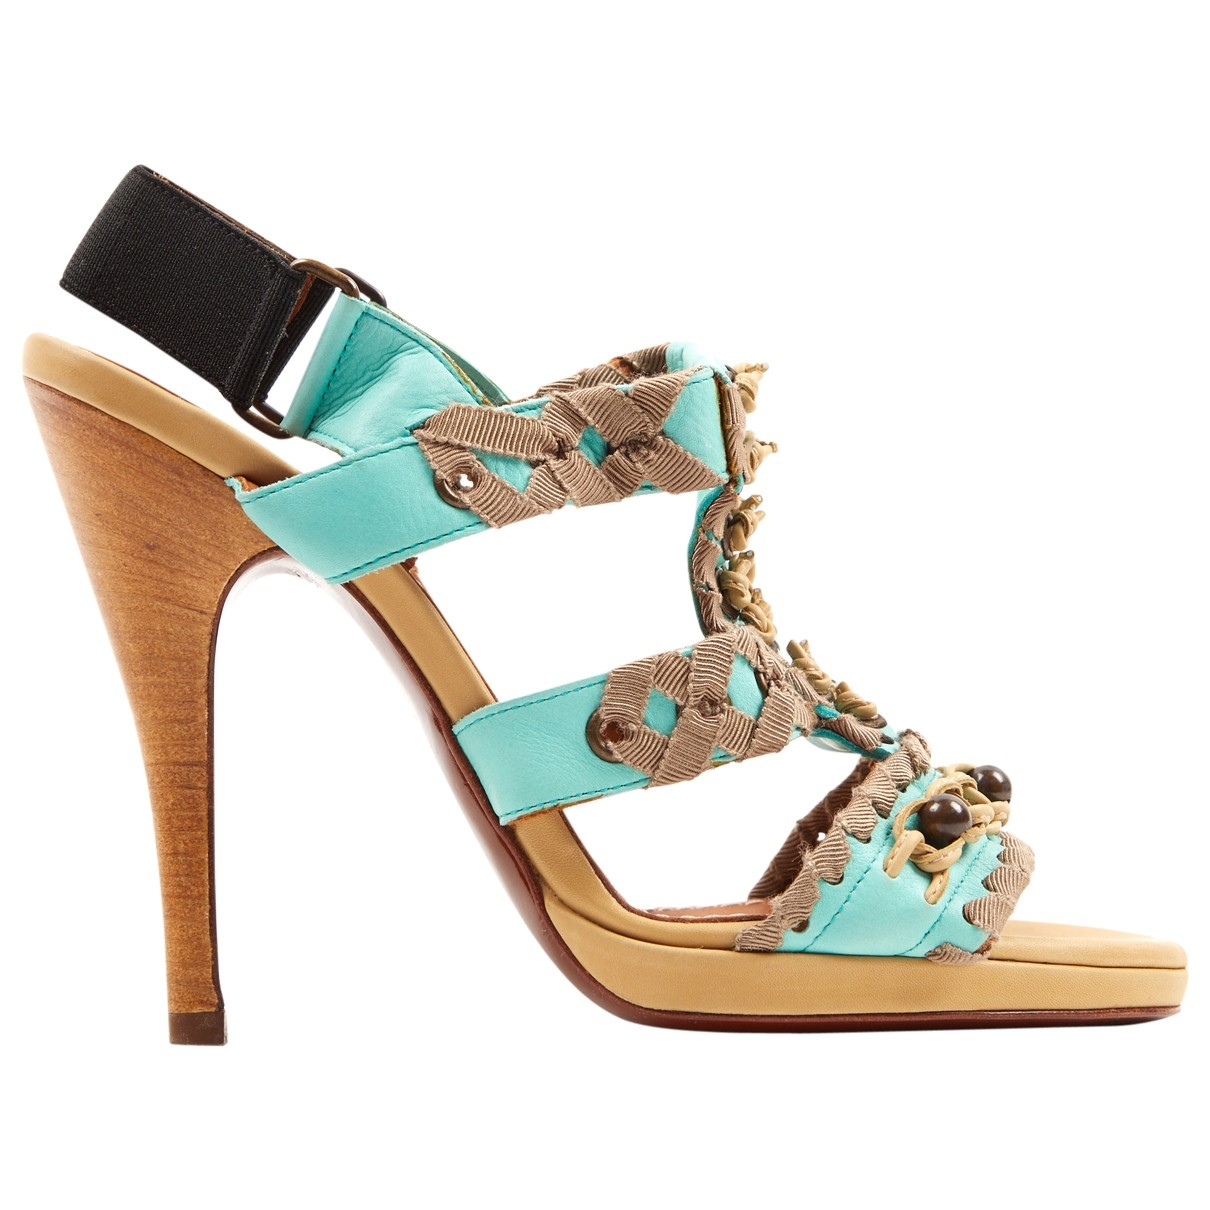 Lanvin \N Turquoise Leather Sandals for Women 37 EU